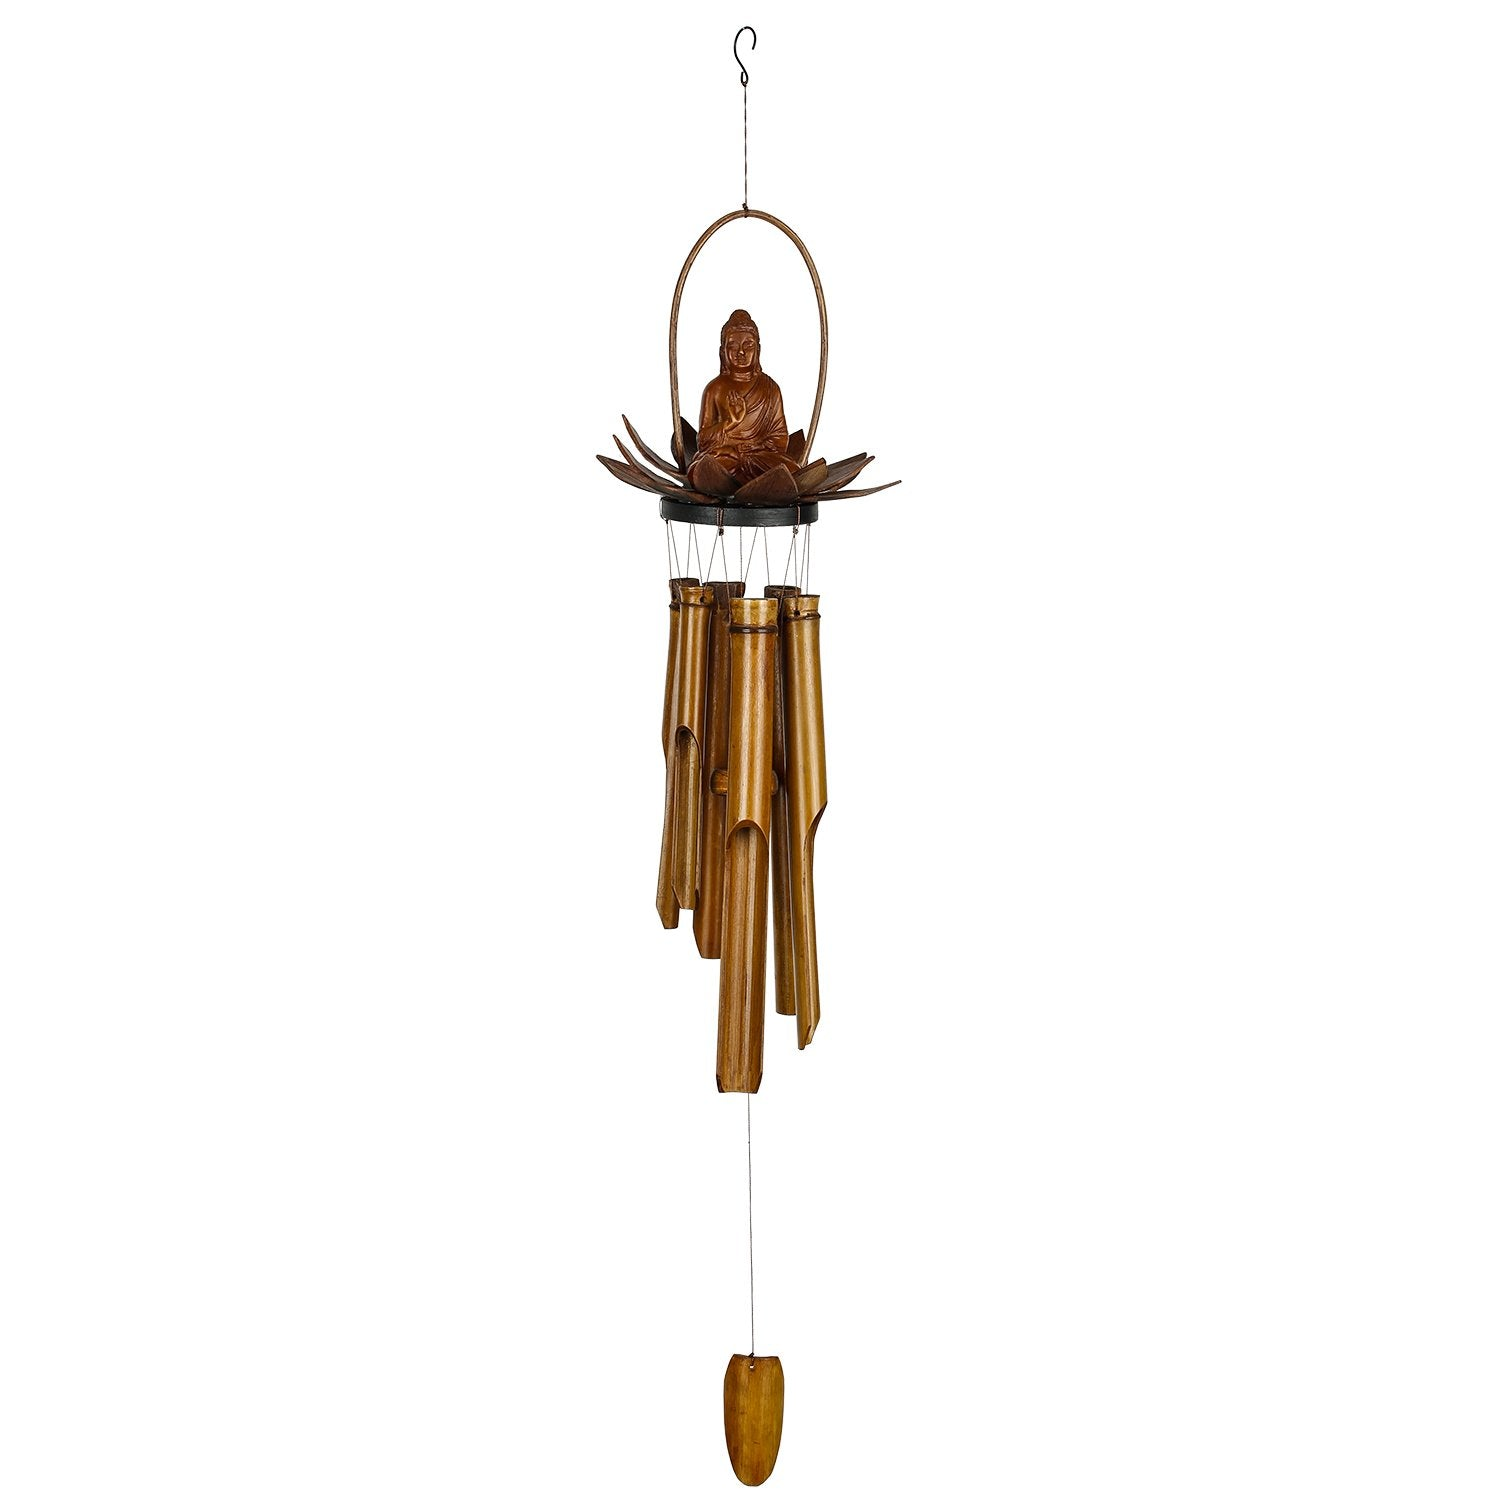 Lotus Buddha Bamboo Chime full product image